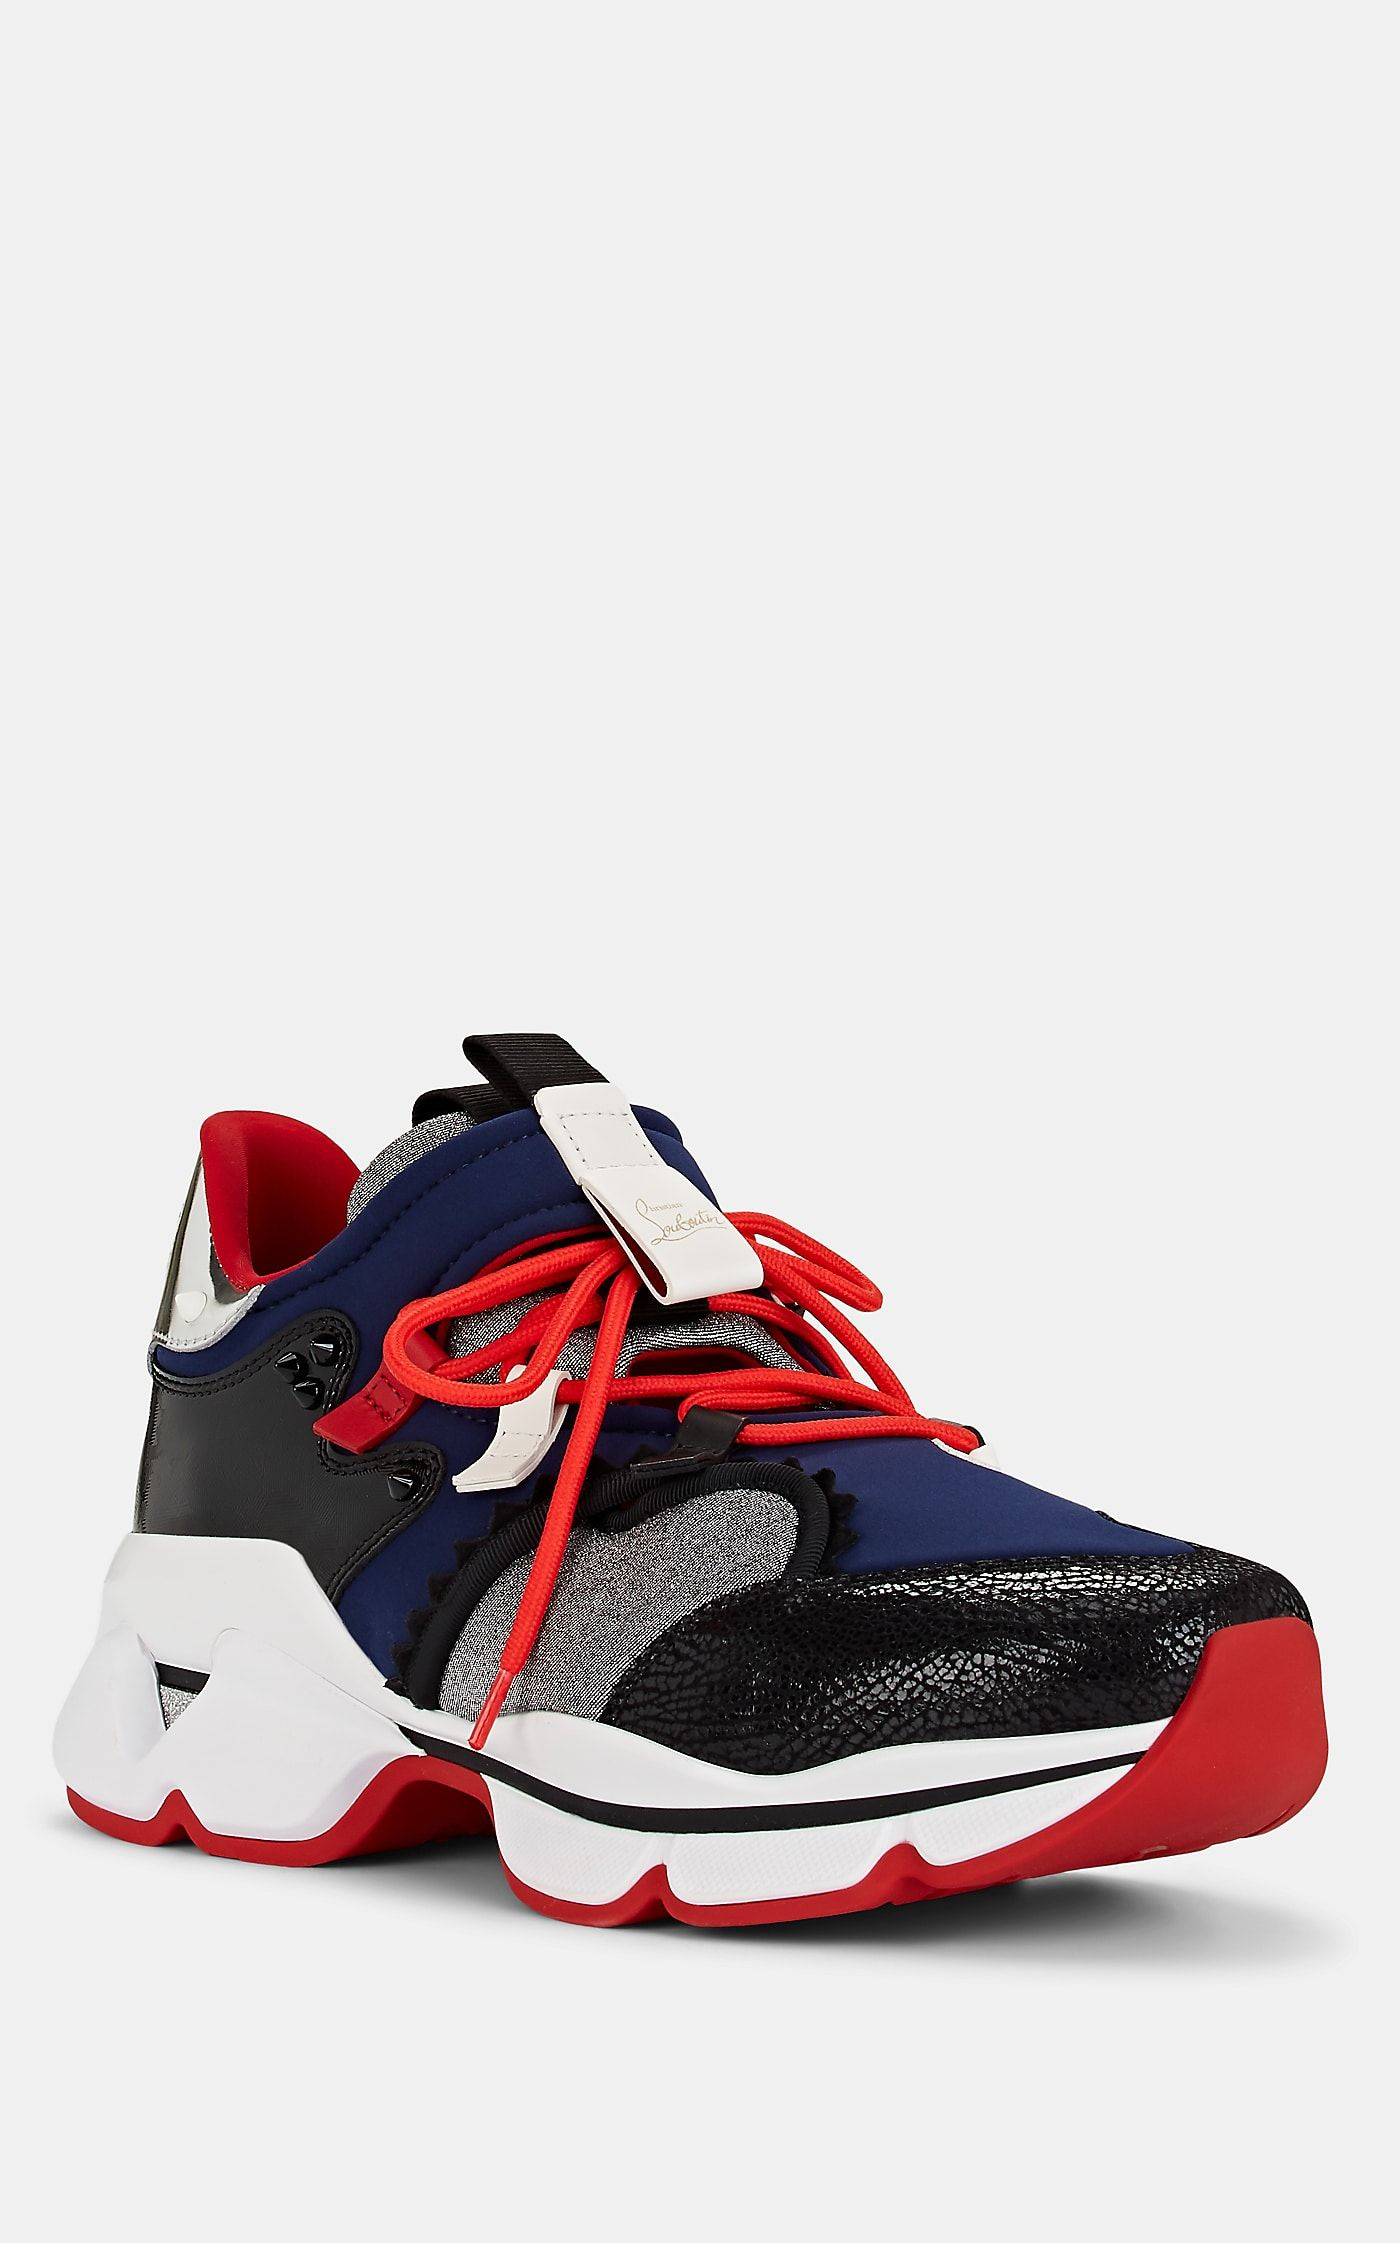 new arrival 98d51 55a91 Christian Louboutin Men's Red-Runner Mixed-Material Sneakers ...